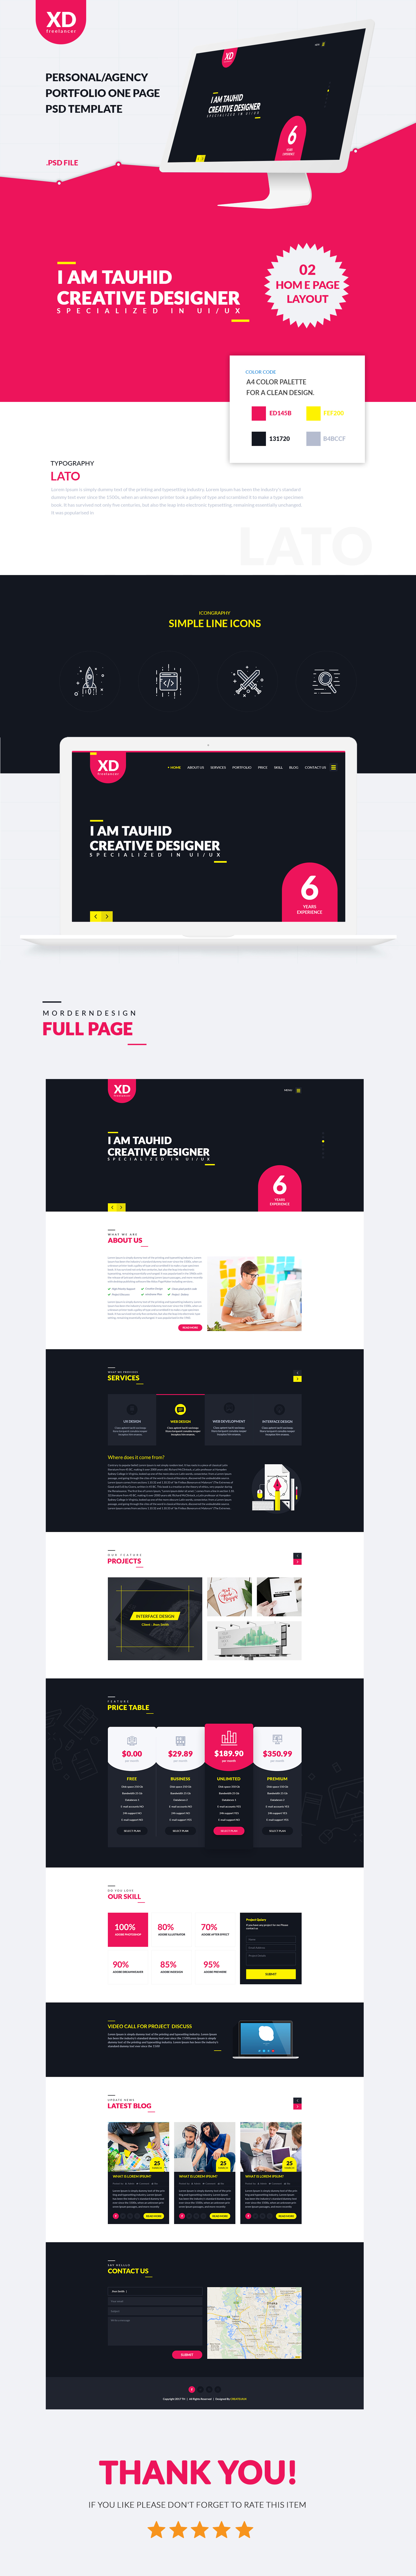 XD Freelancer- Personal/Agency Portfolio One Page HTML Template - 1